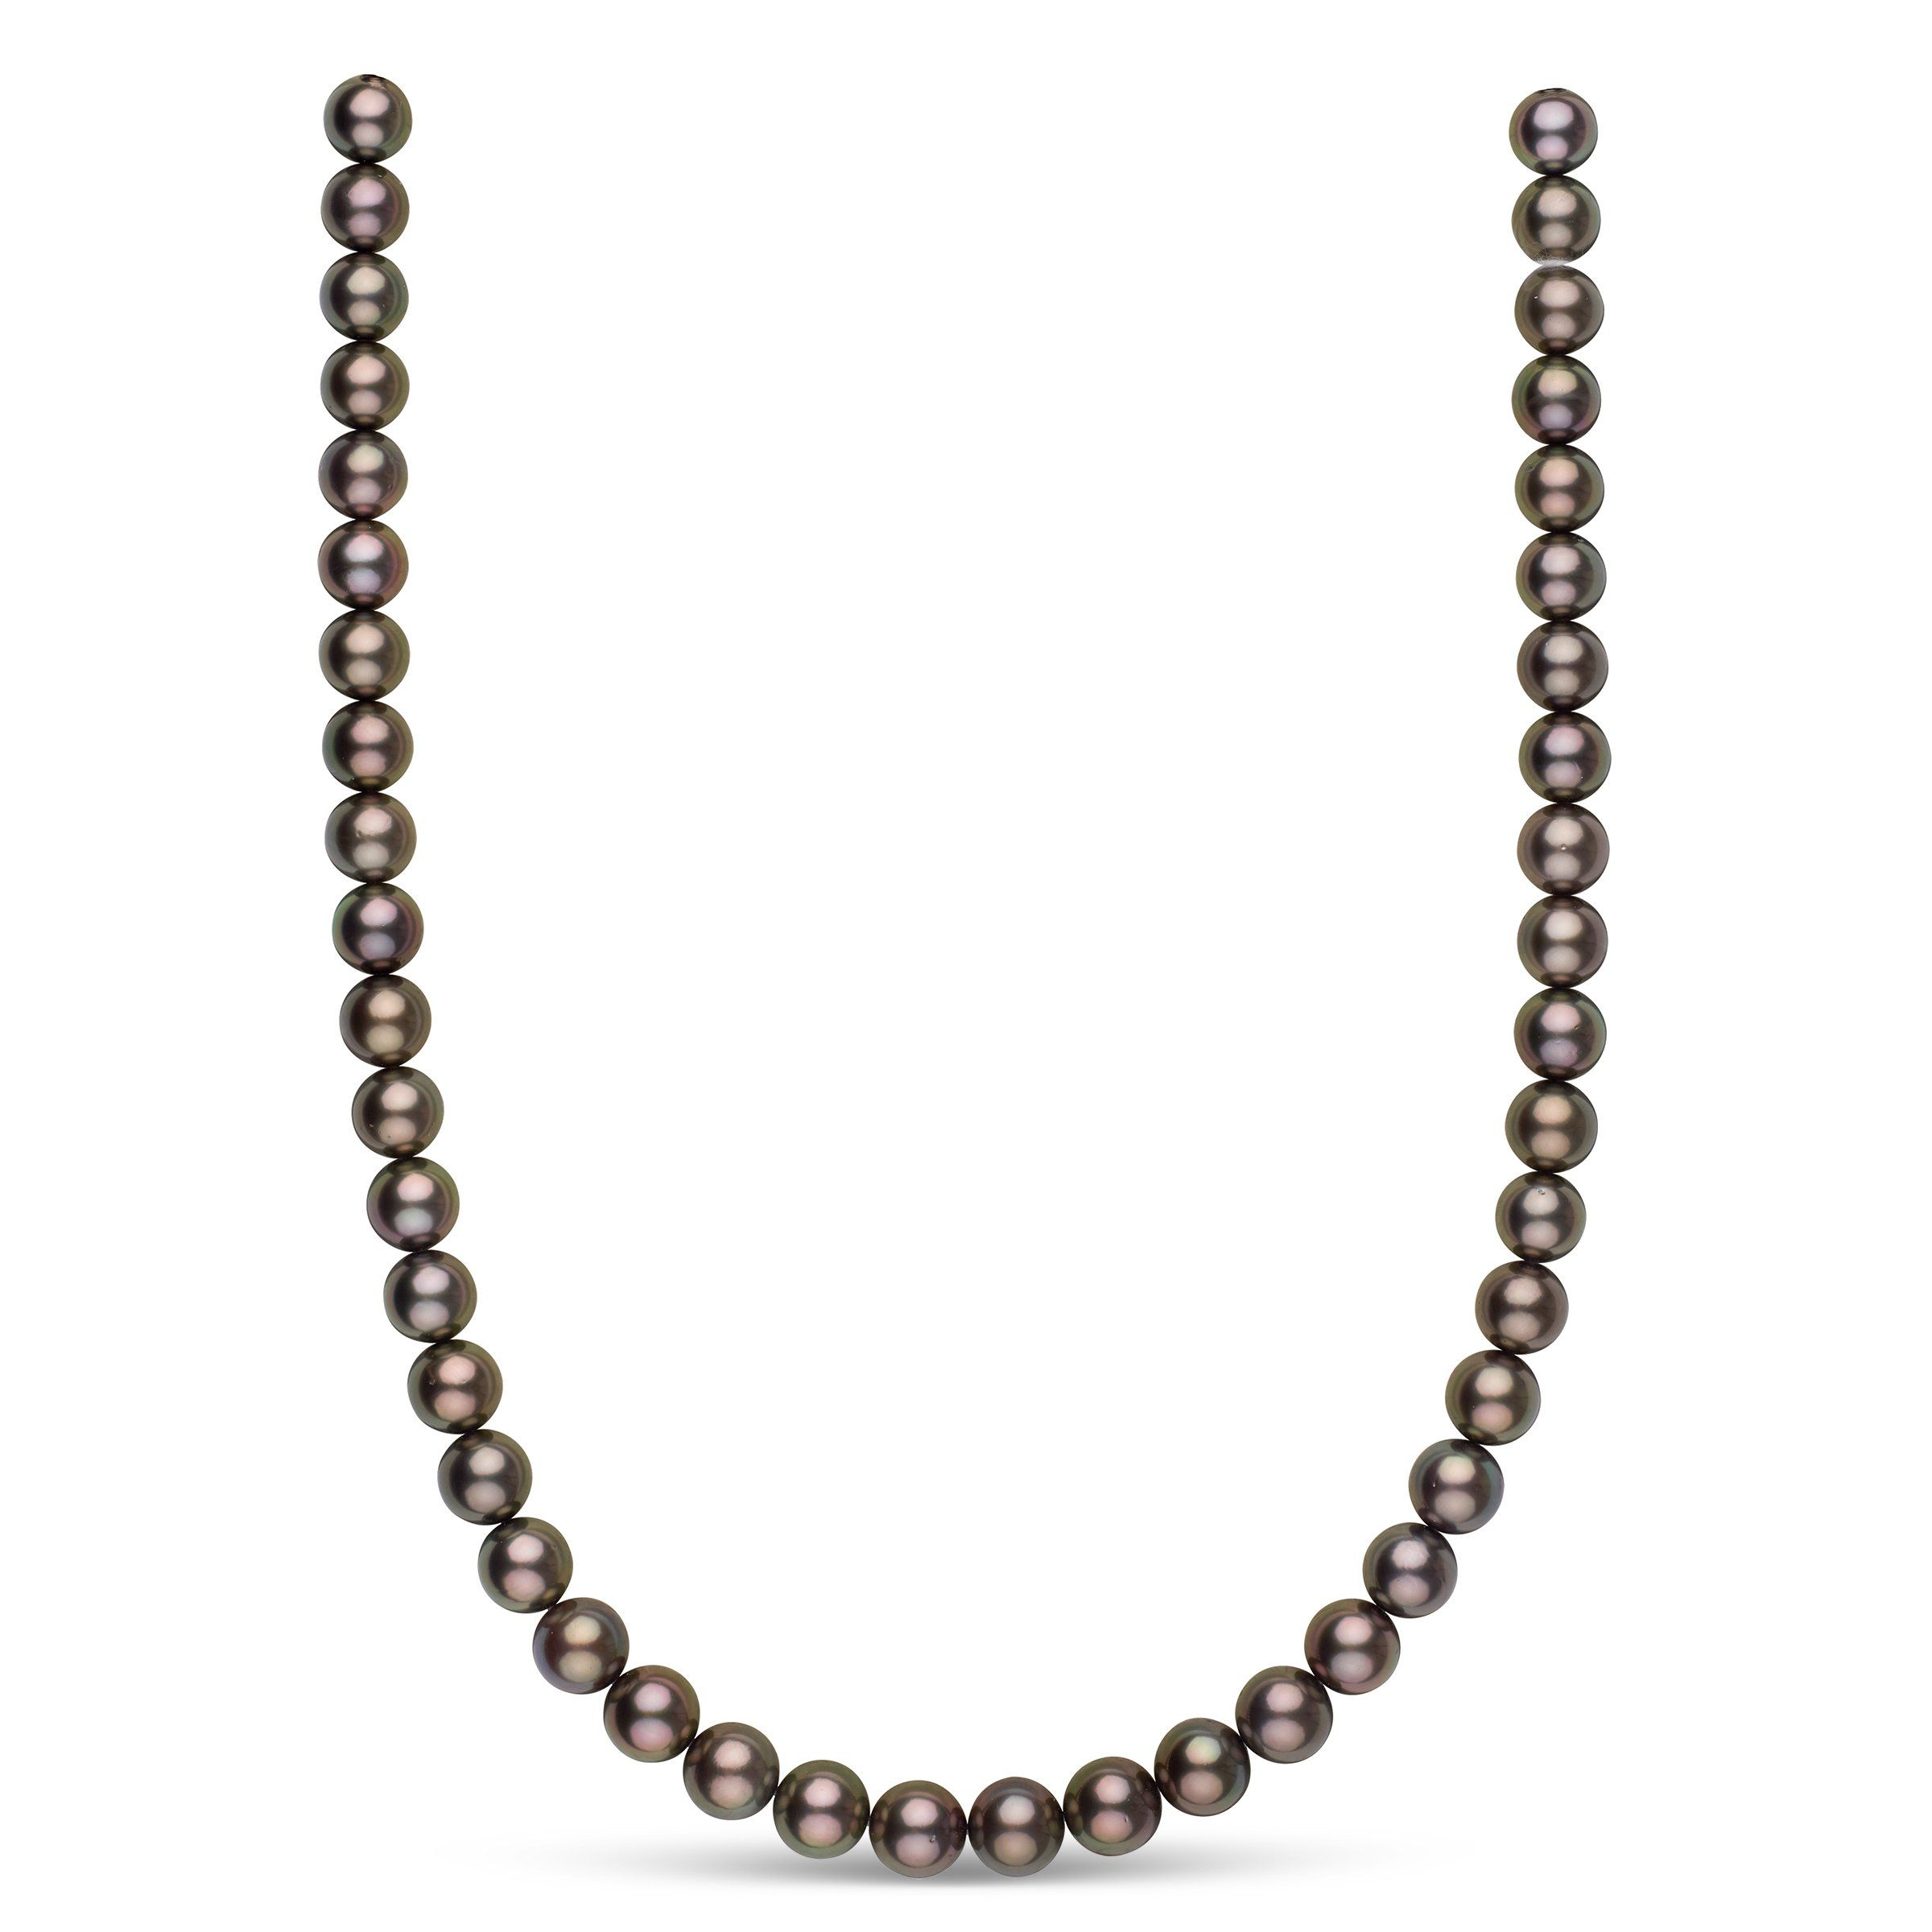 9.0-9.9 mm AA+/AAA Tahitian Round Pearl Necklace